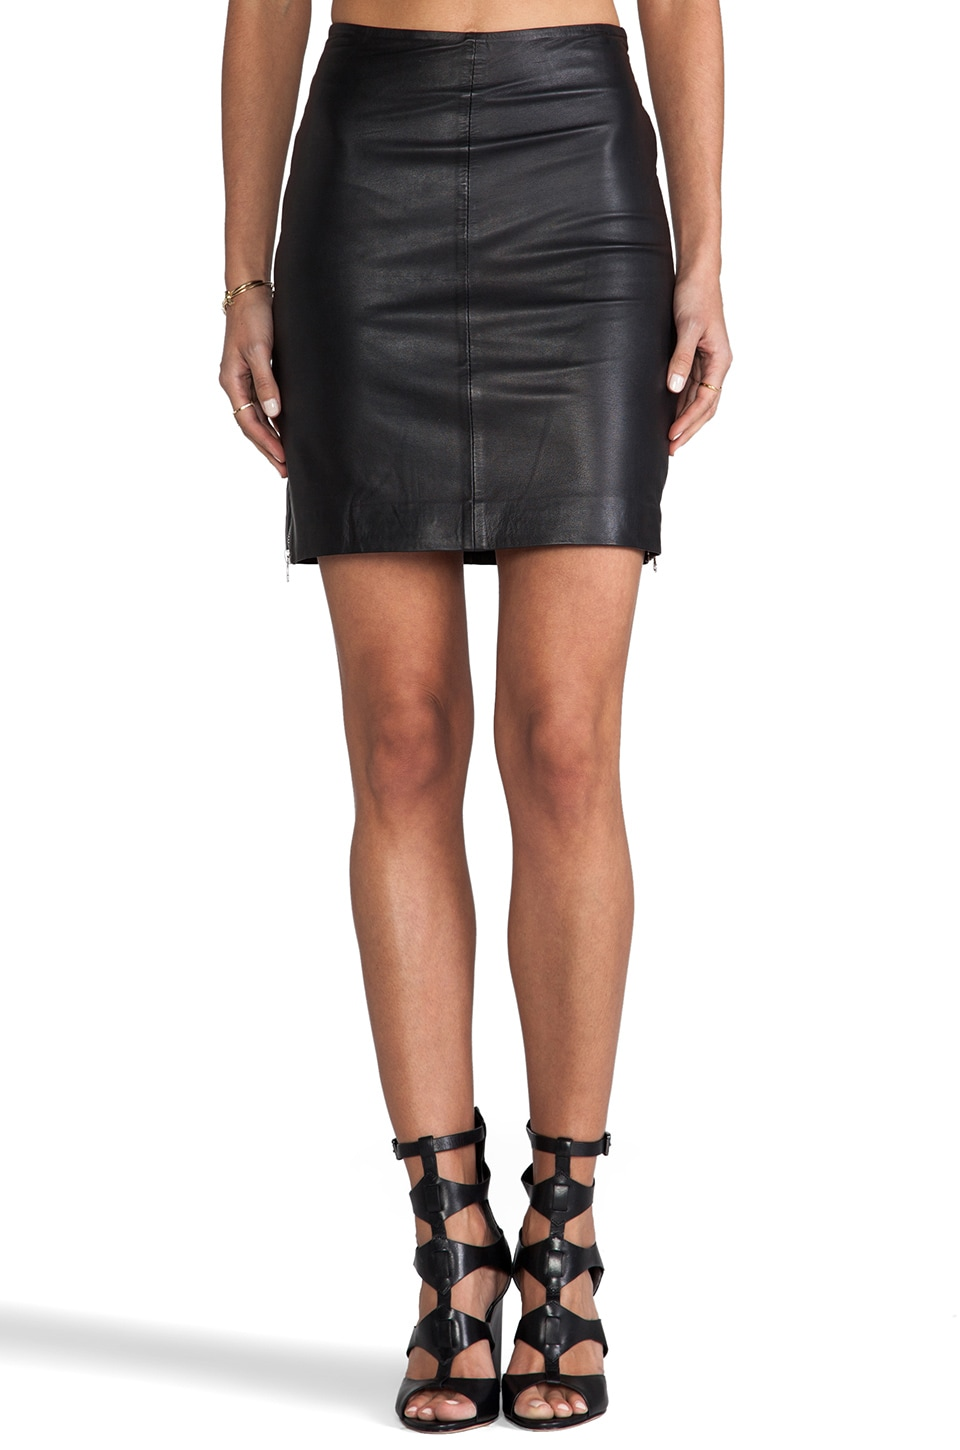 Muubaa Dani Pencil Skirt in Black